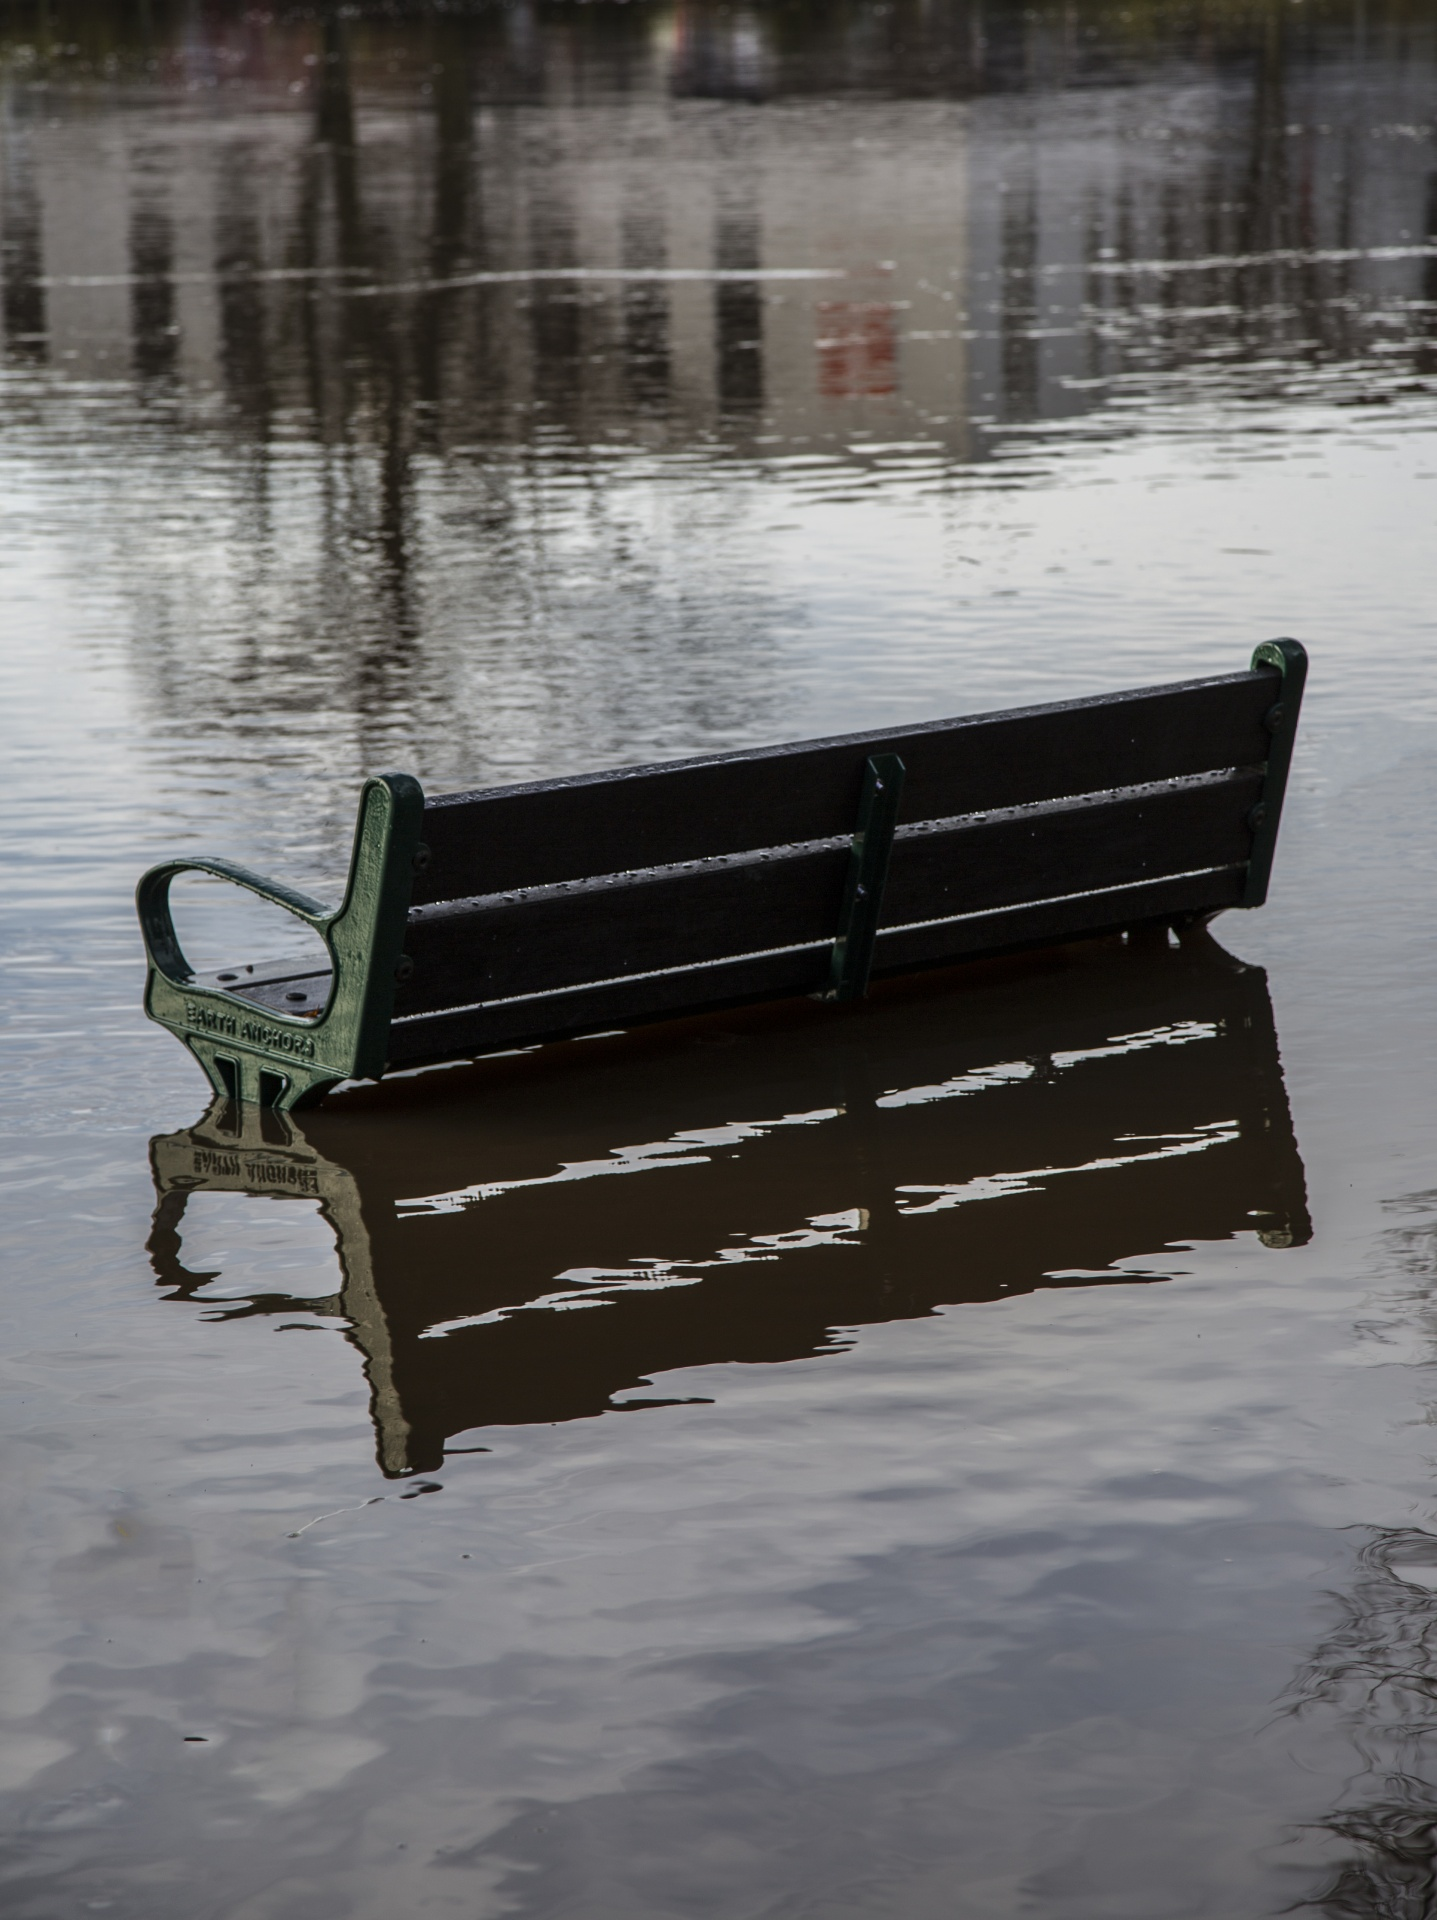 Study: Maryland Faces $27.4 Billion Price Tag for Sea Level Rise